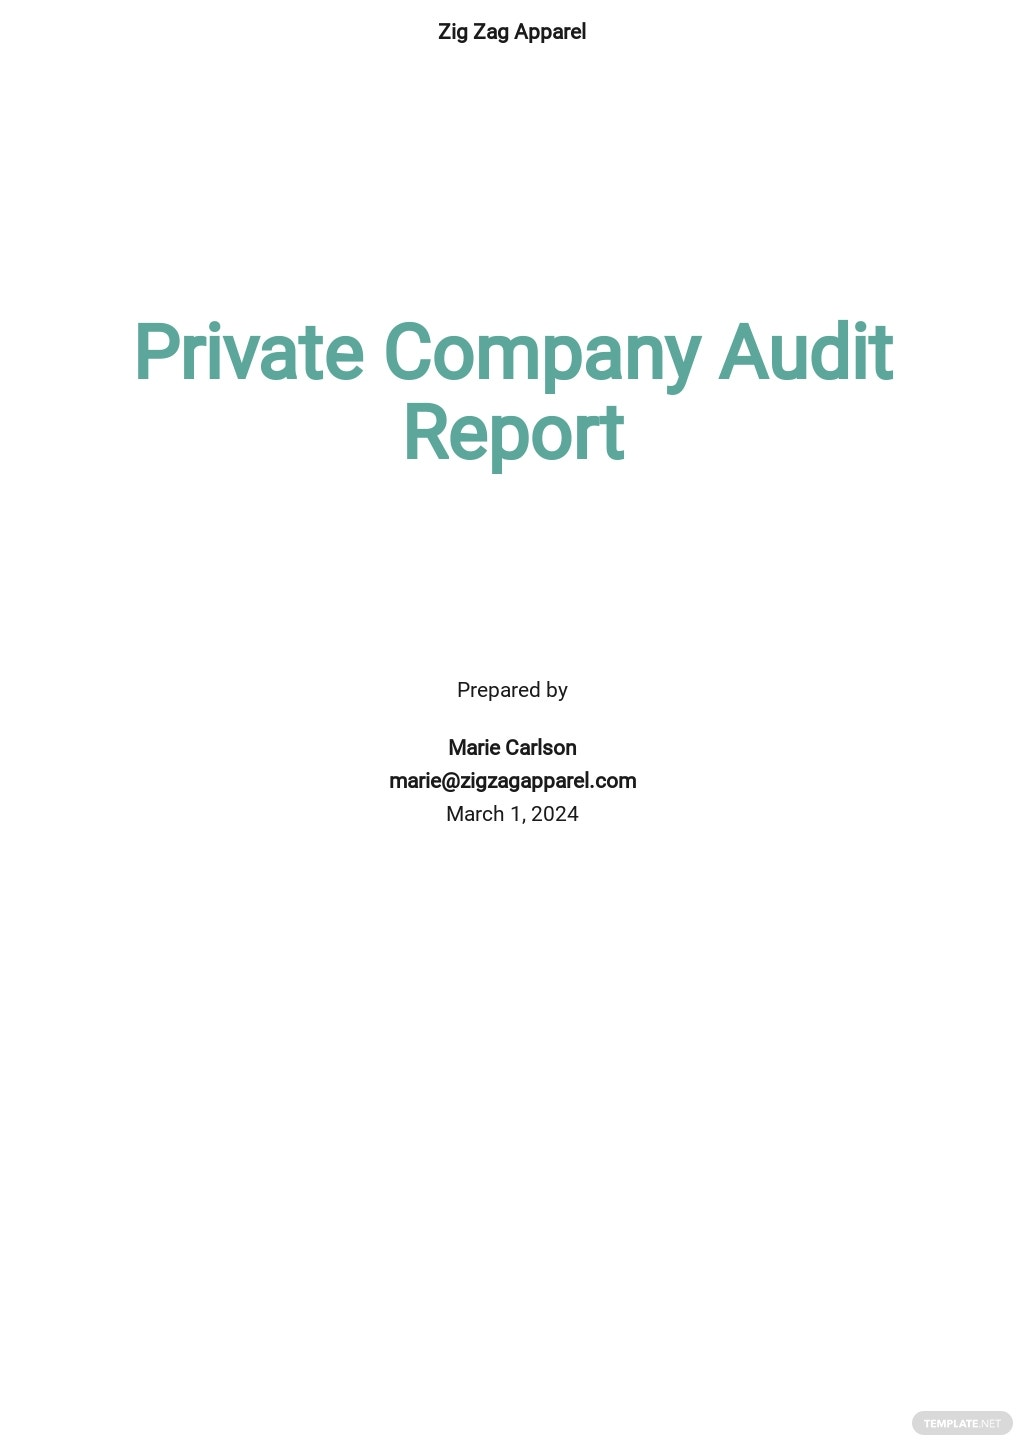 Private Company Audit Report Sample Template .jpe